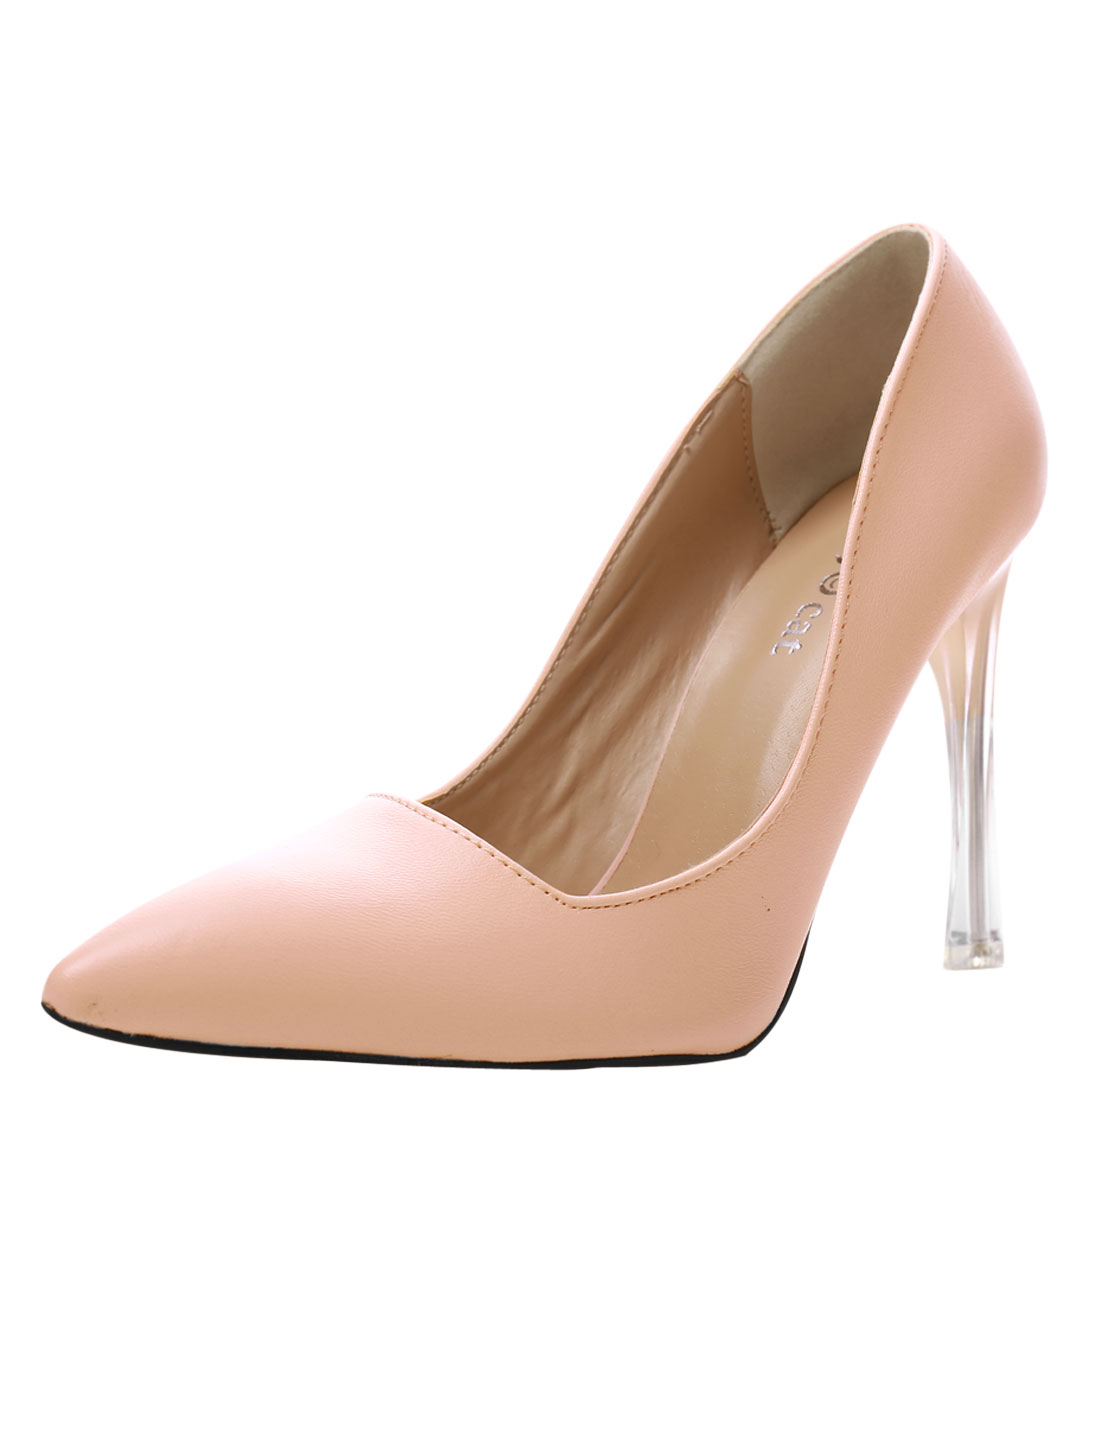 Lady Pointed Toe Translucent High Heel Pumps Nude Pink 7.5